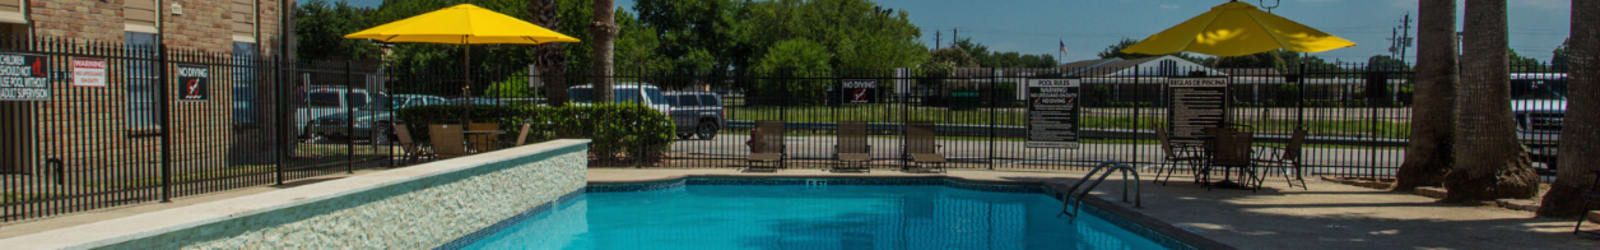 Floor plans at Maple Trail Apartments & Townhomes in Pasadena, Texas